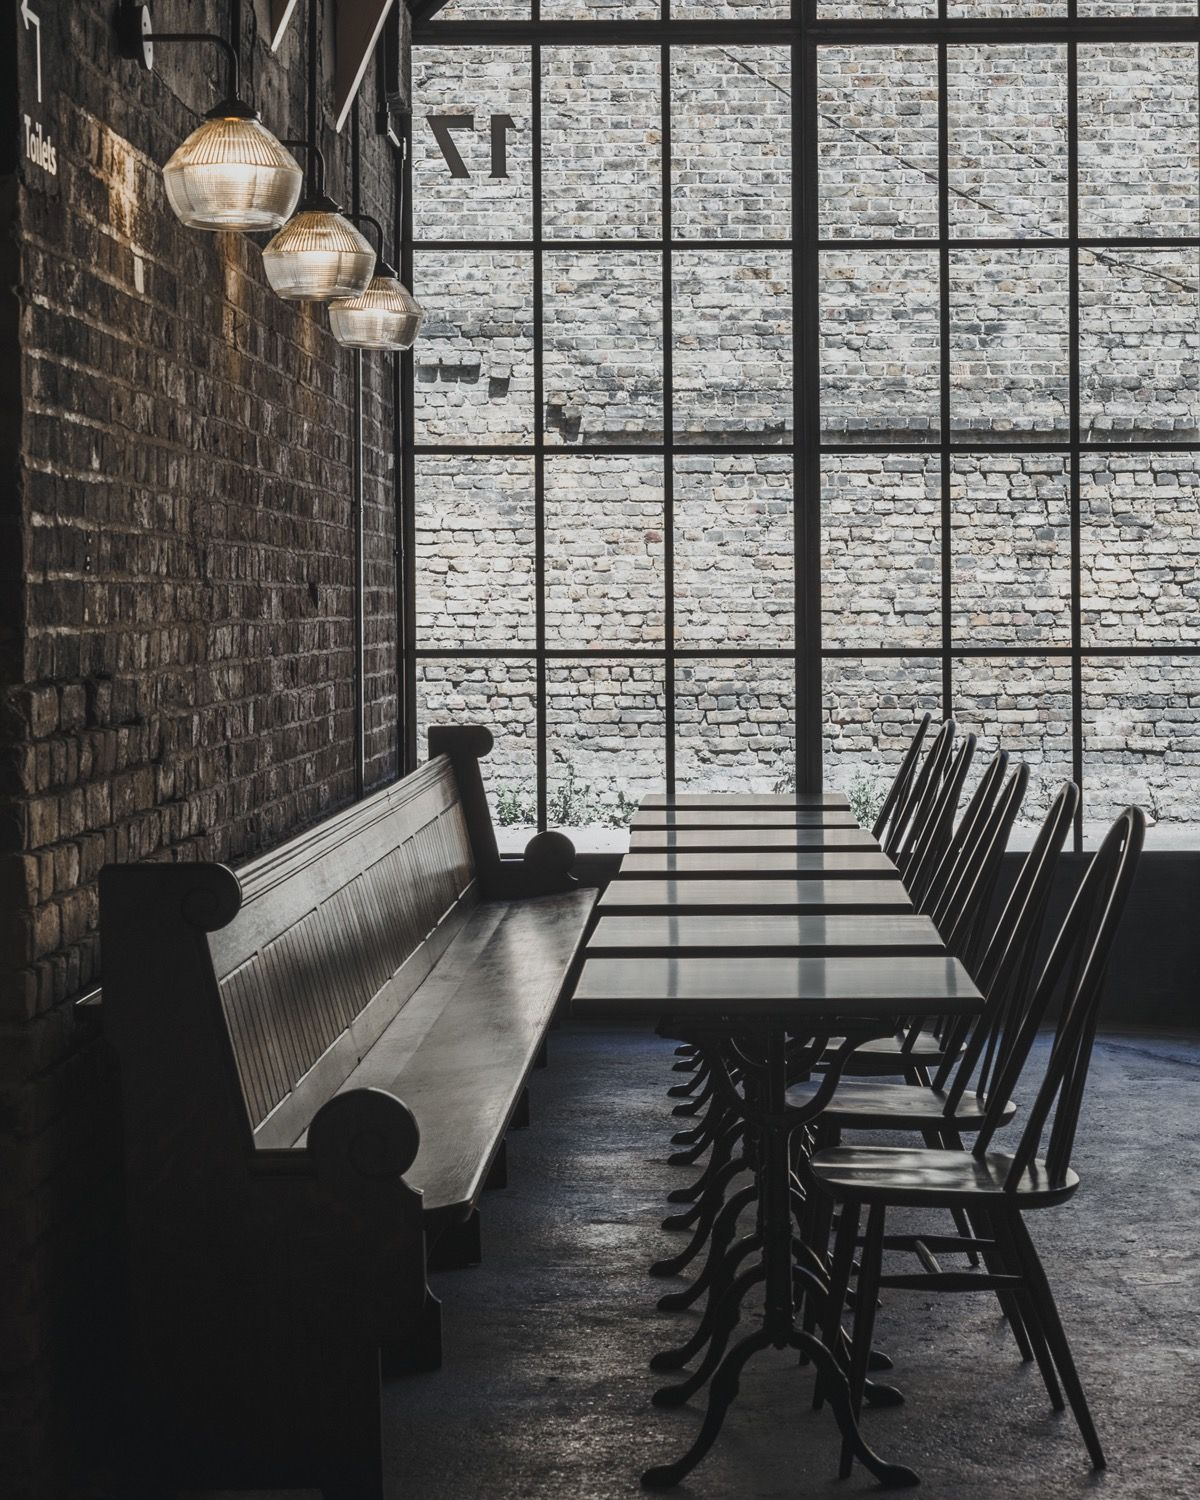 A Peek Inside St John At Hackney Brewery In London Brewery Brewery Design Brick Arch